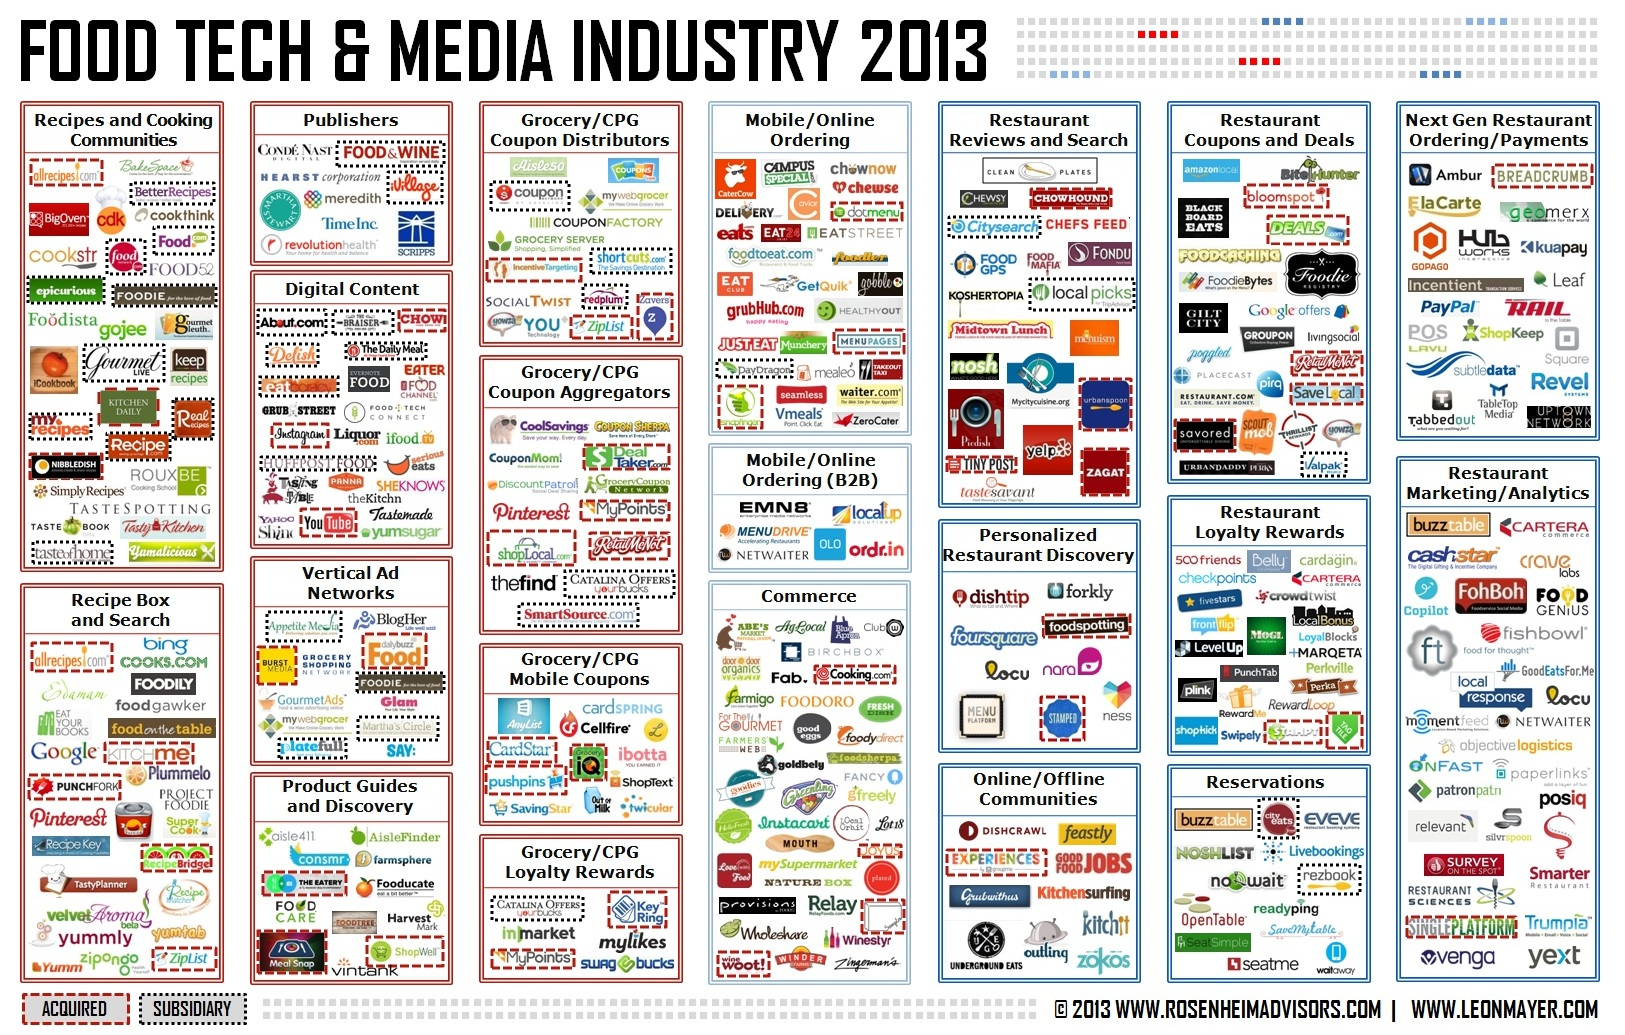 Food Tech and Media Industry 2013 - Rosenheim Advisors and Leon Mayer